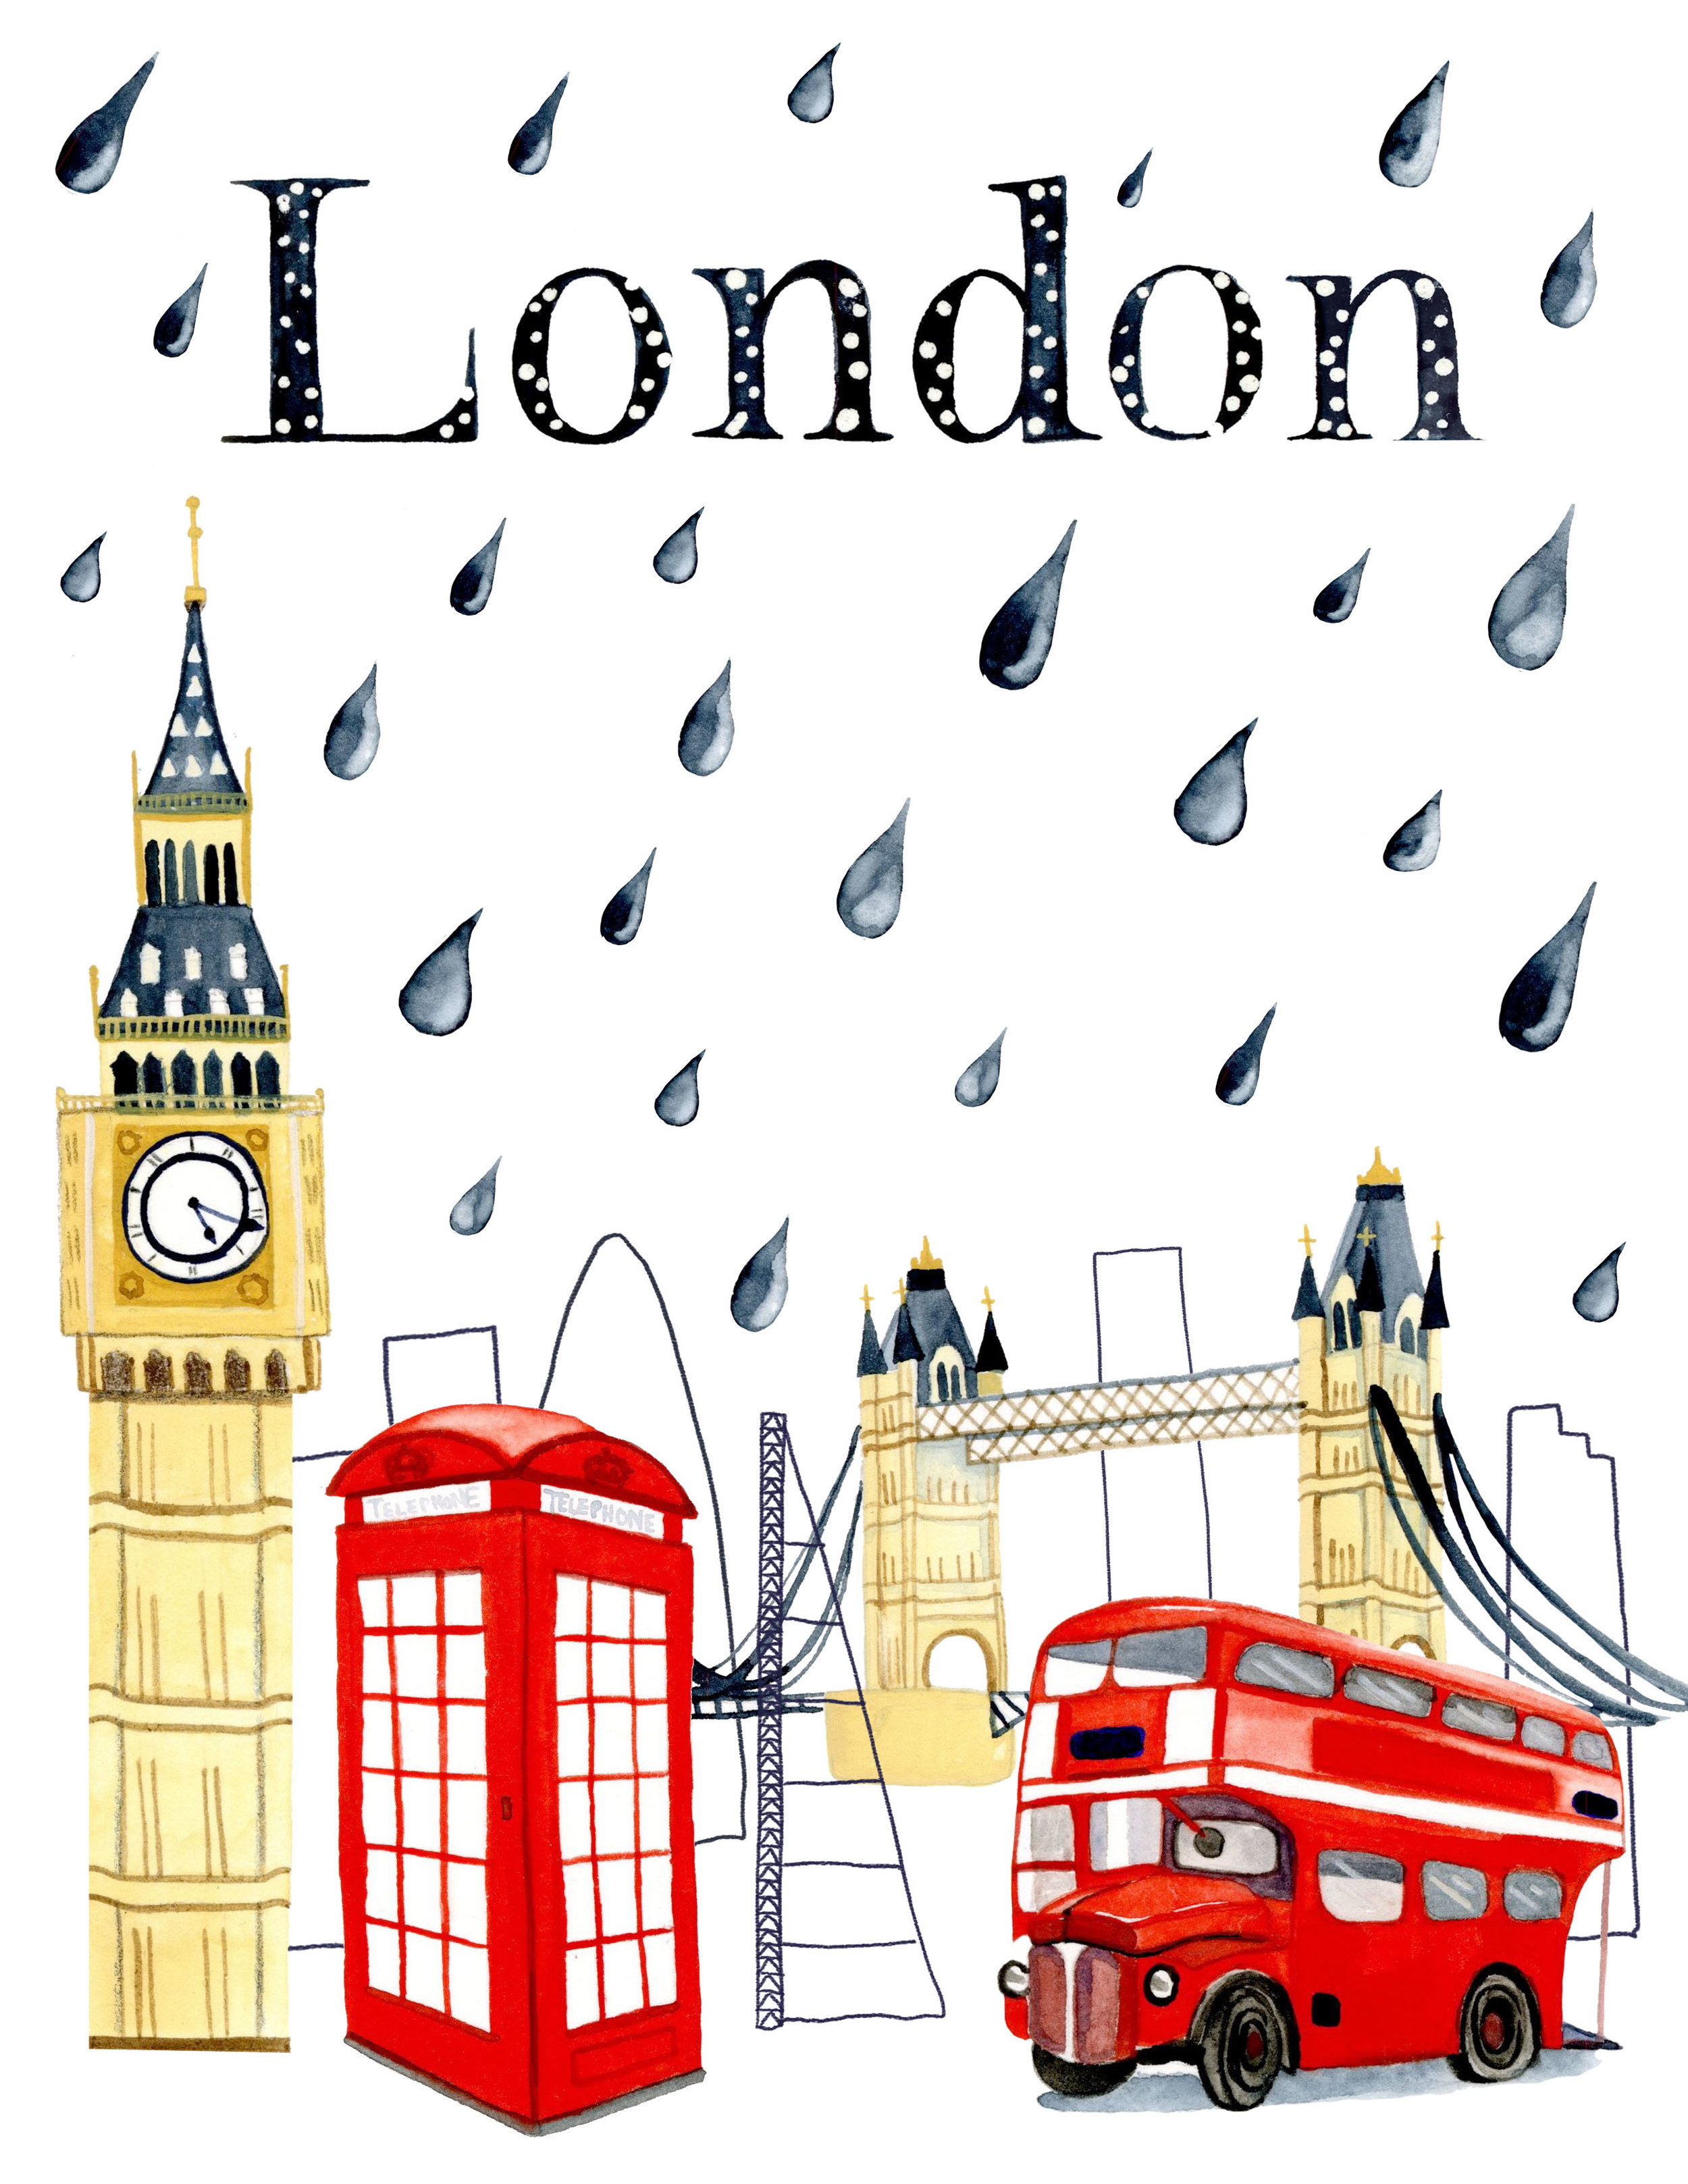 London Poster/Editorial Illustration